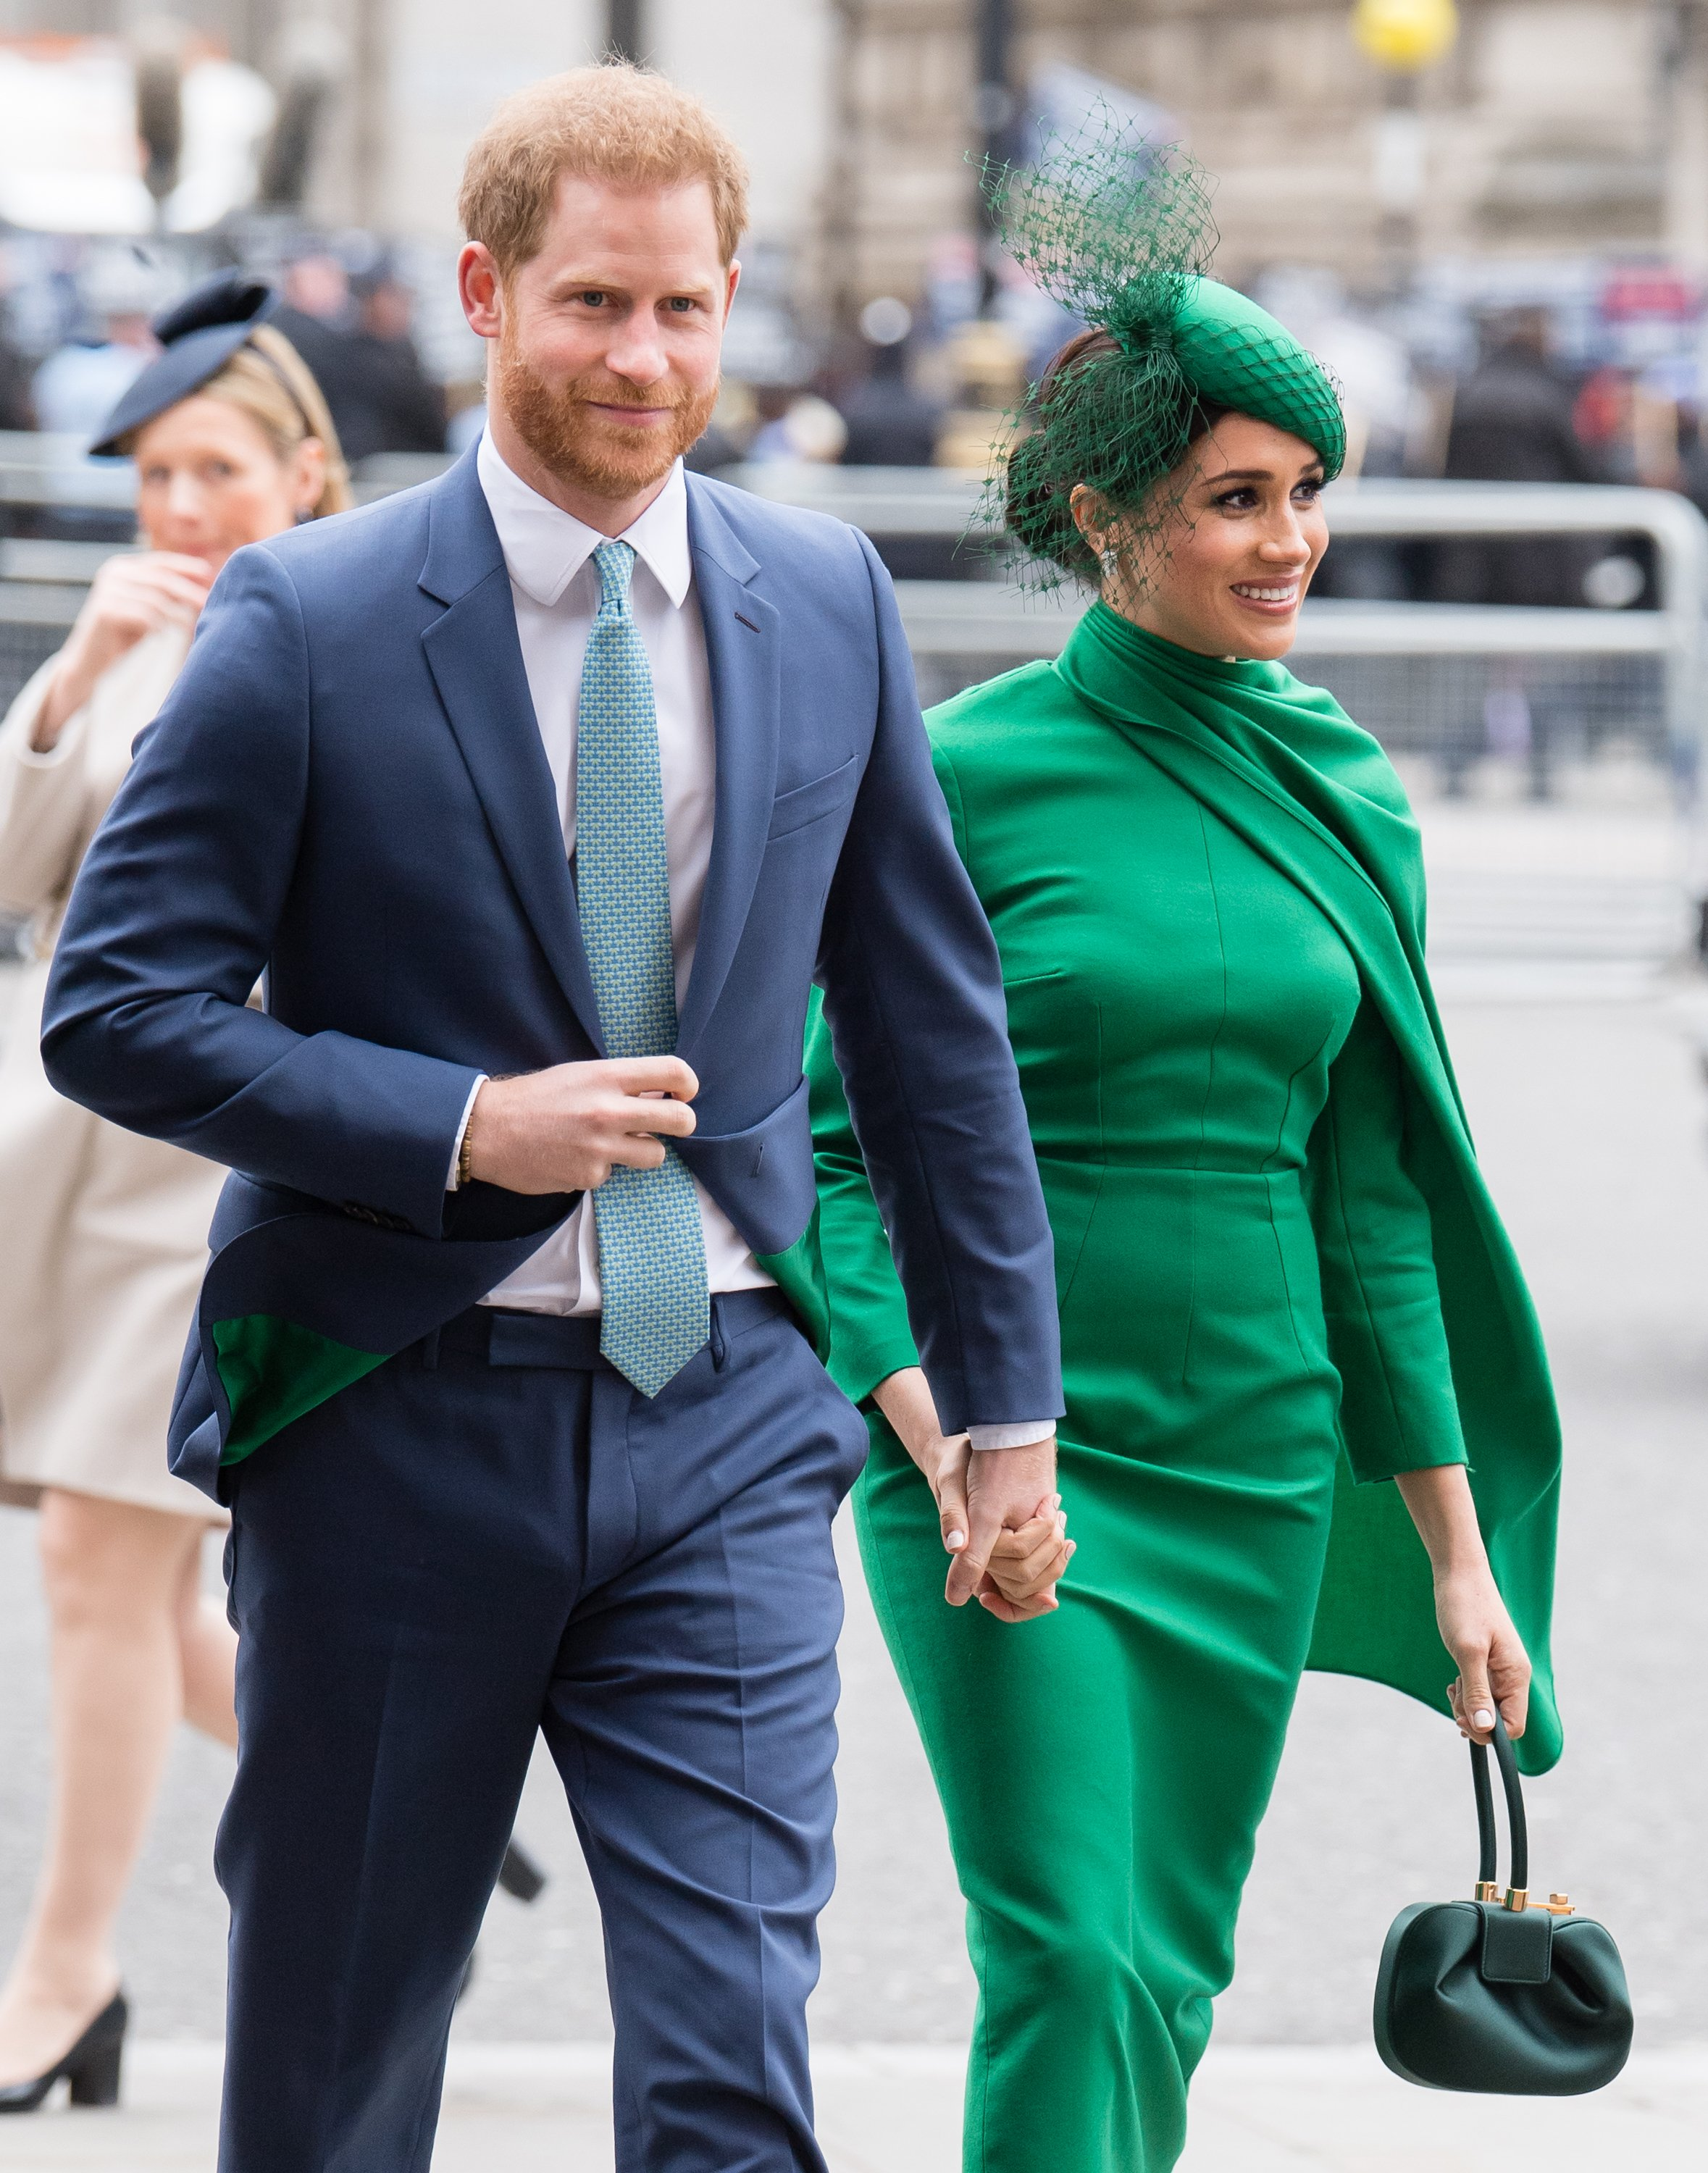 Prince Harry, Duke of Sussex and Meghan, Duchess of Sussex attend the Commonwealth Day Service 2020 on March 09, 2020 in London, England | Photo: Getty Images